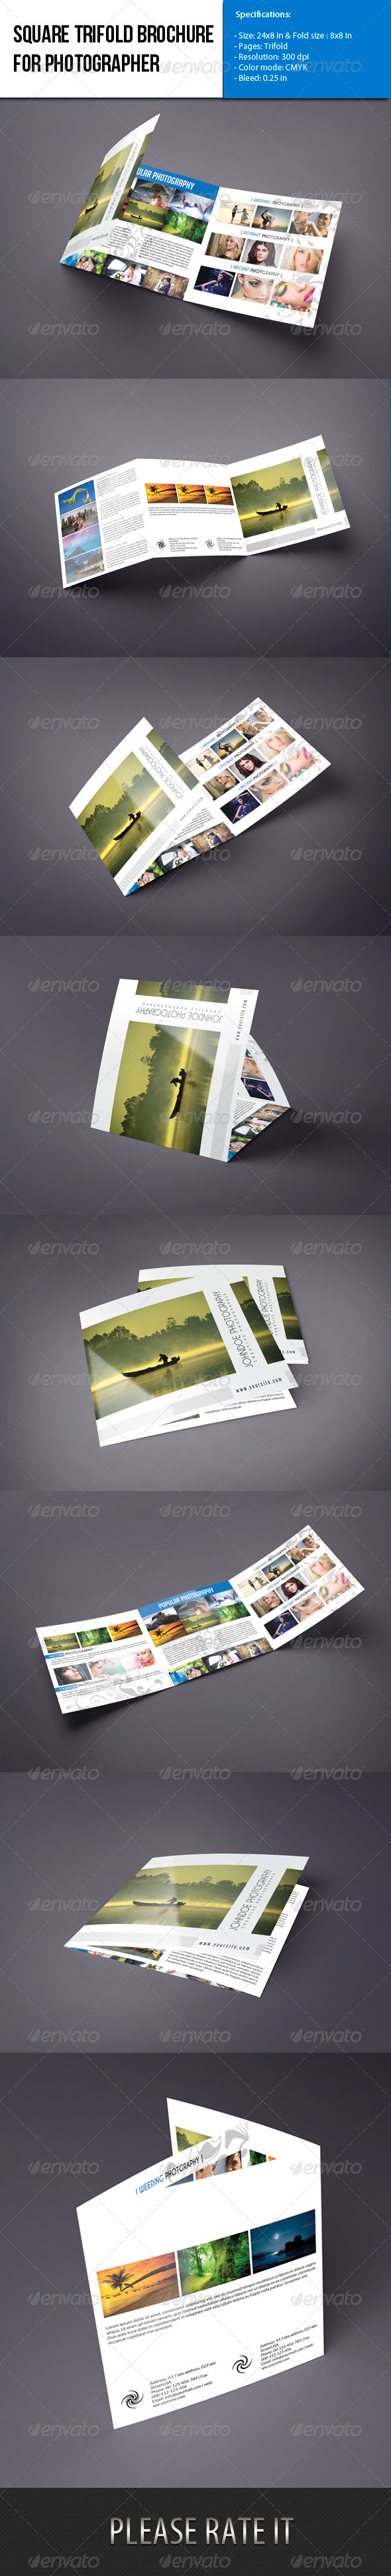 GraphicRiver Square Trifold brochure-Photographer Portfolio 5905701